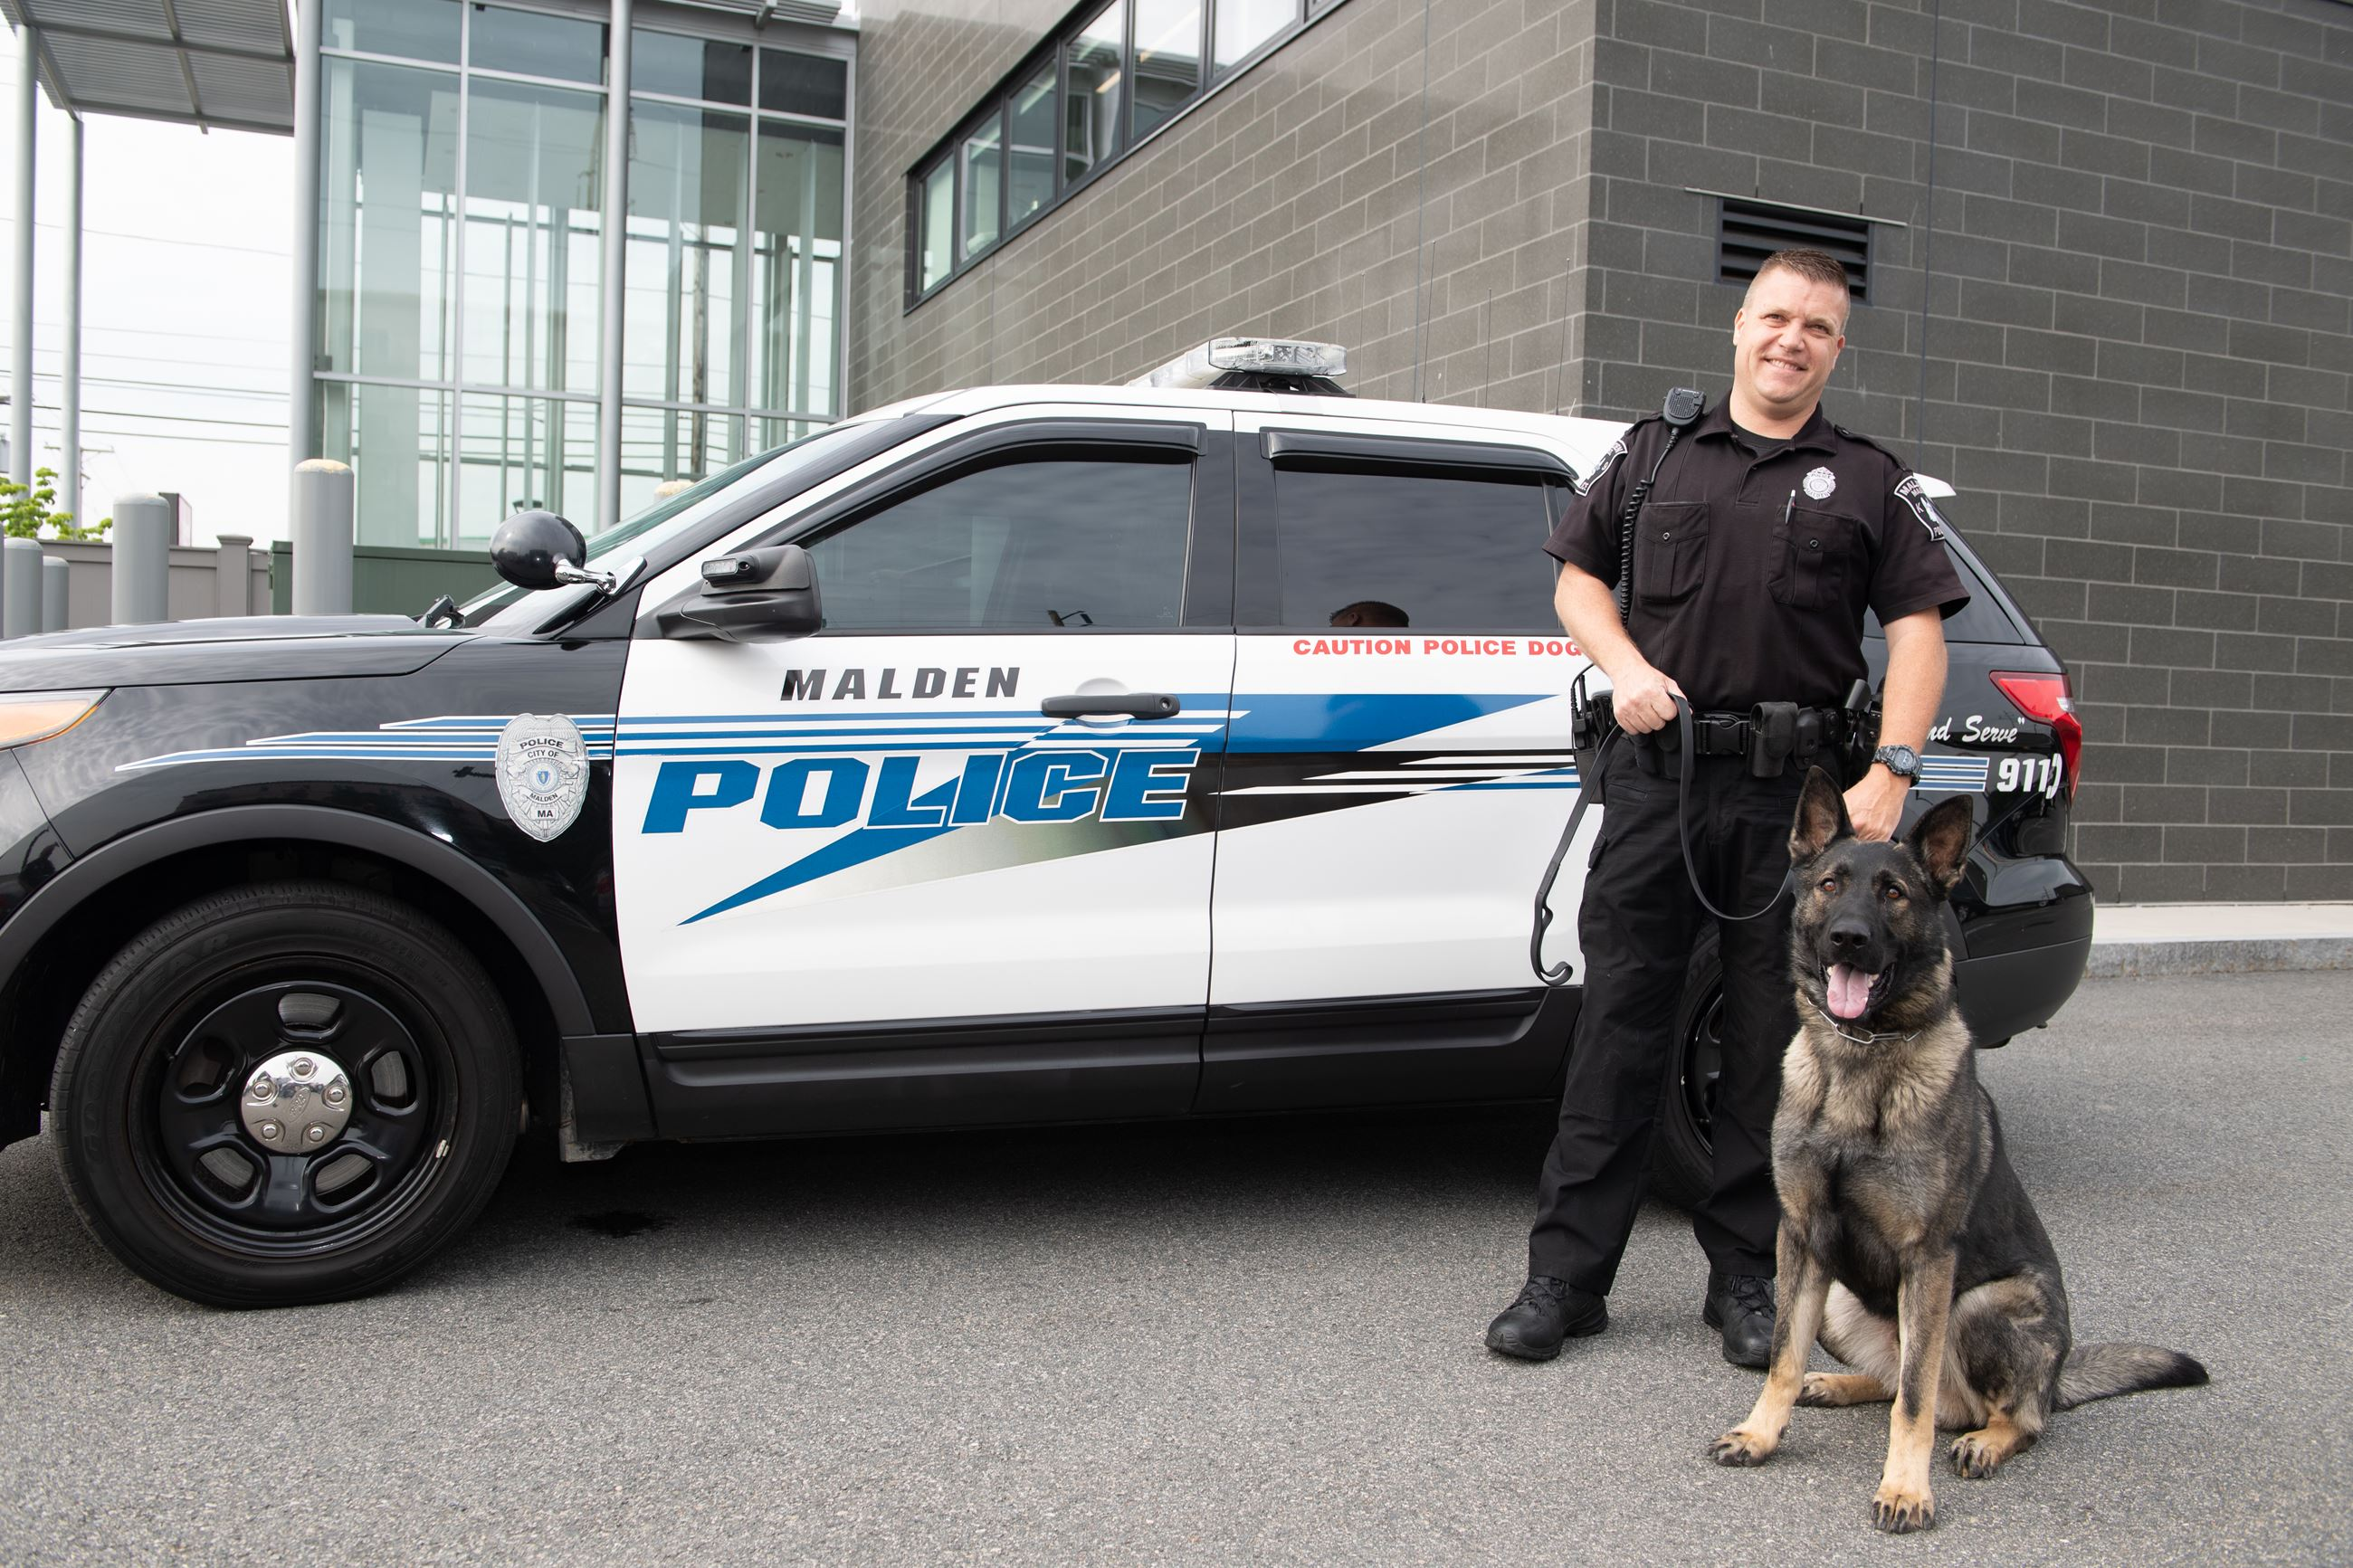 Malden police officer and canine